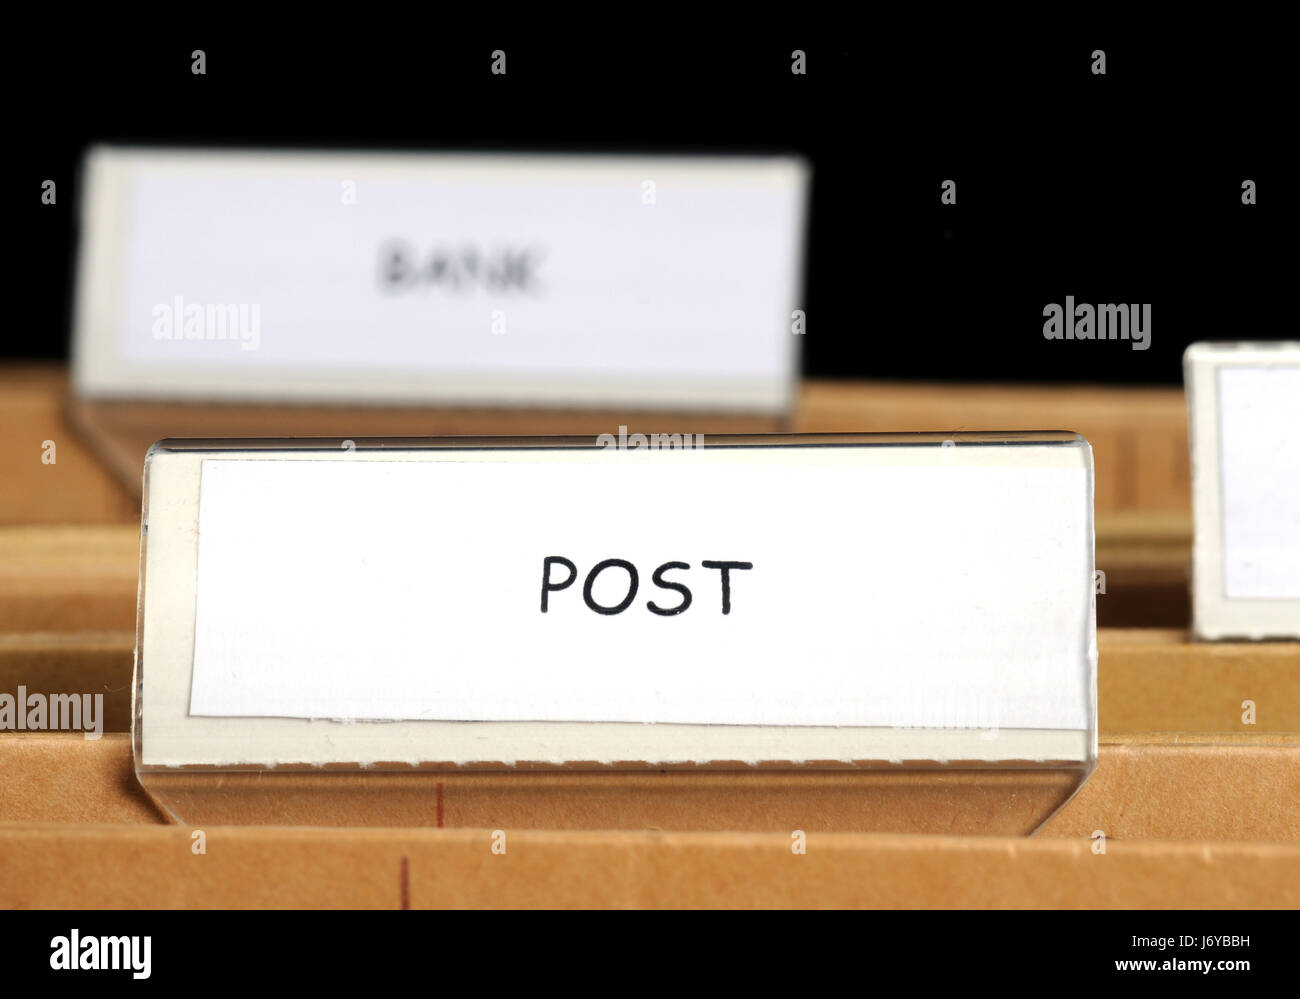 Post Office Official Stockfotos & Post Office Official Bilder - Alamy